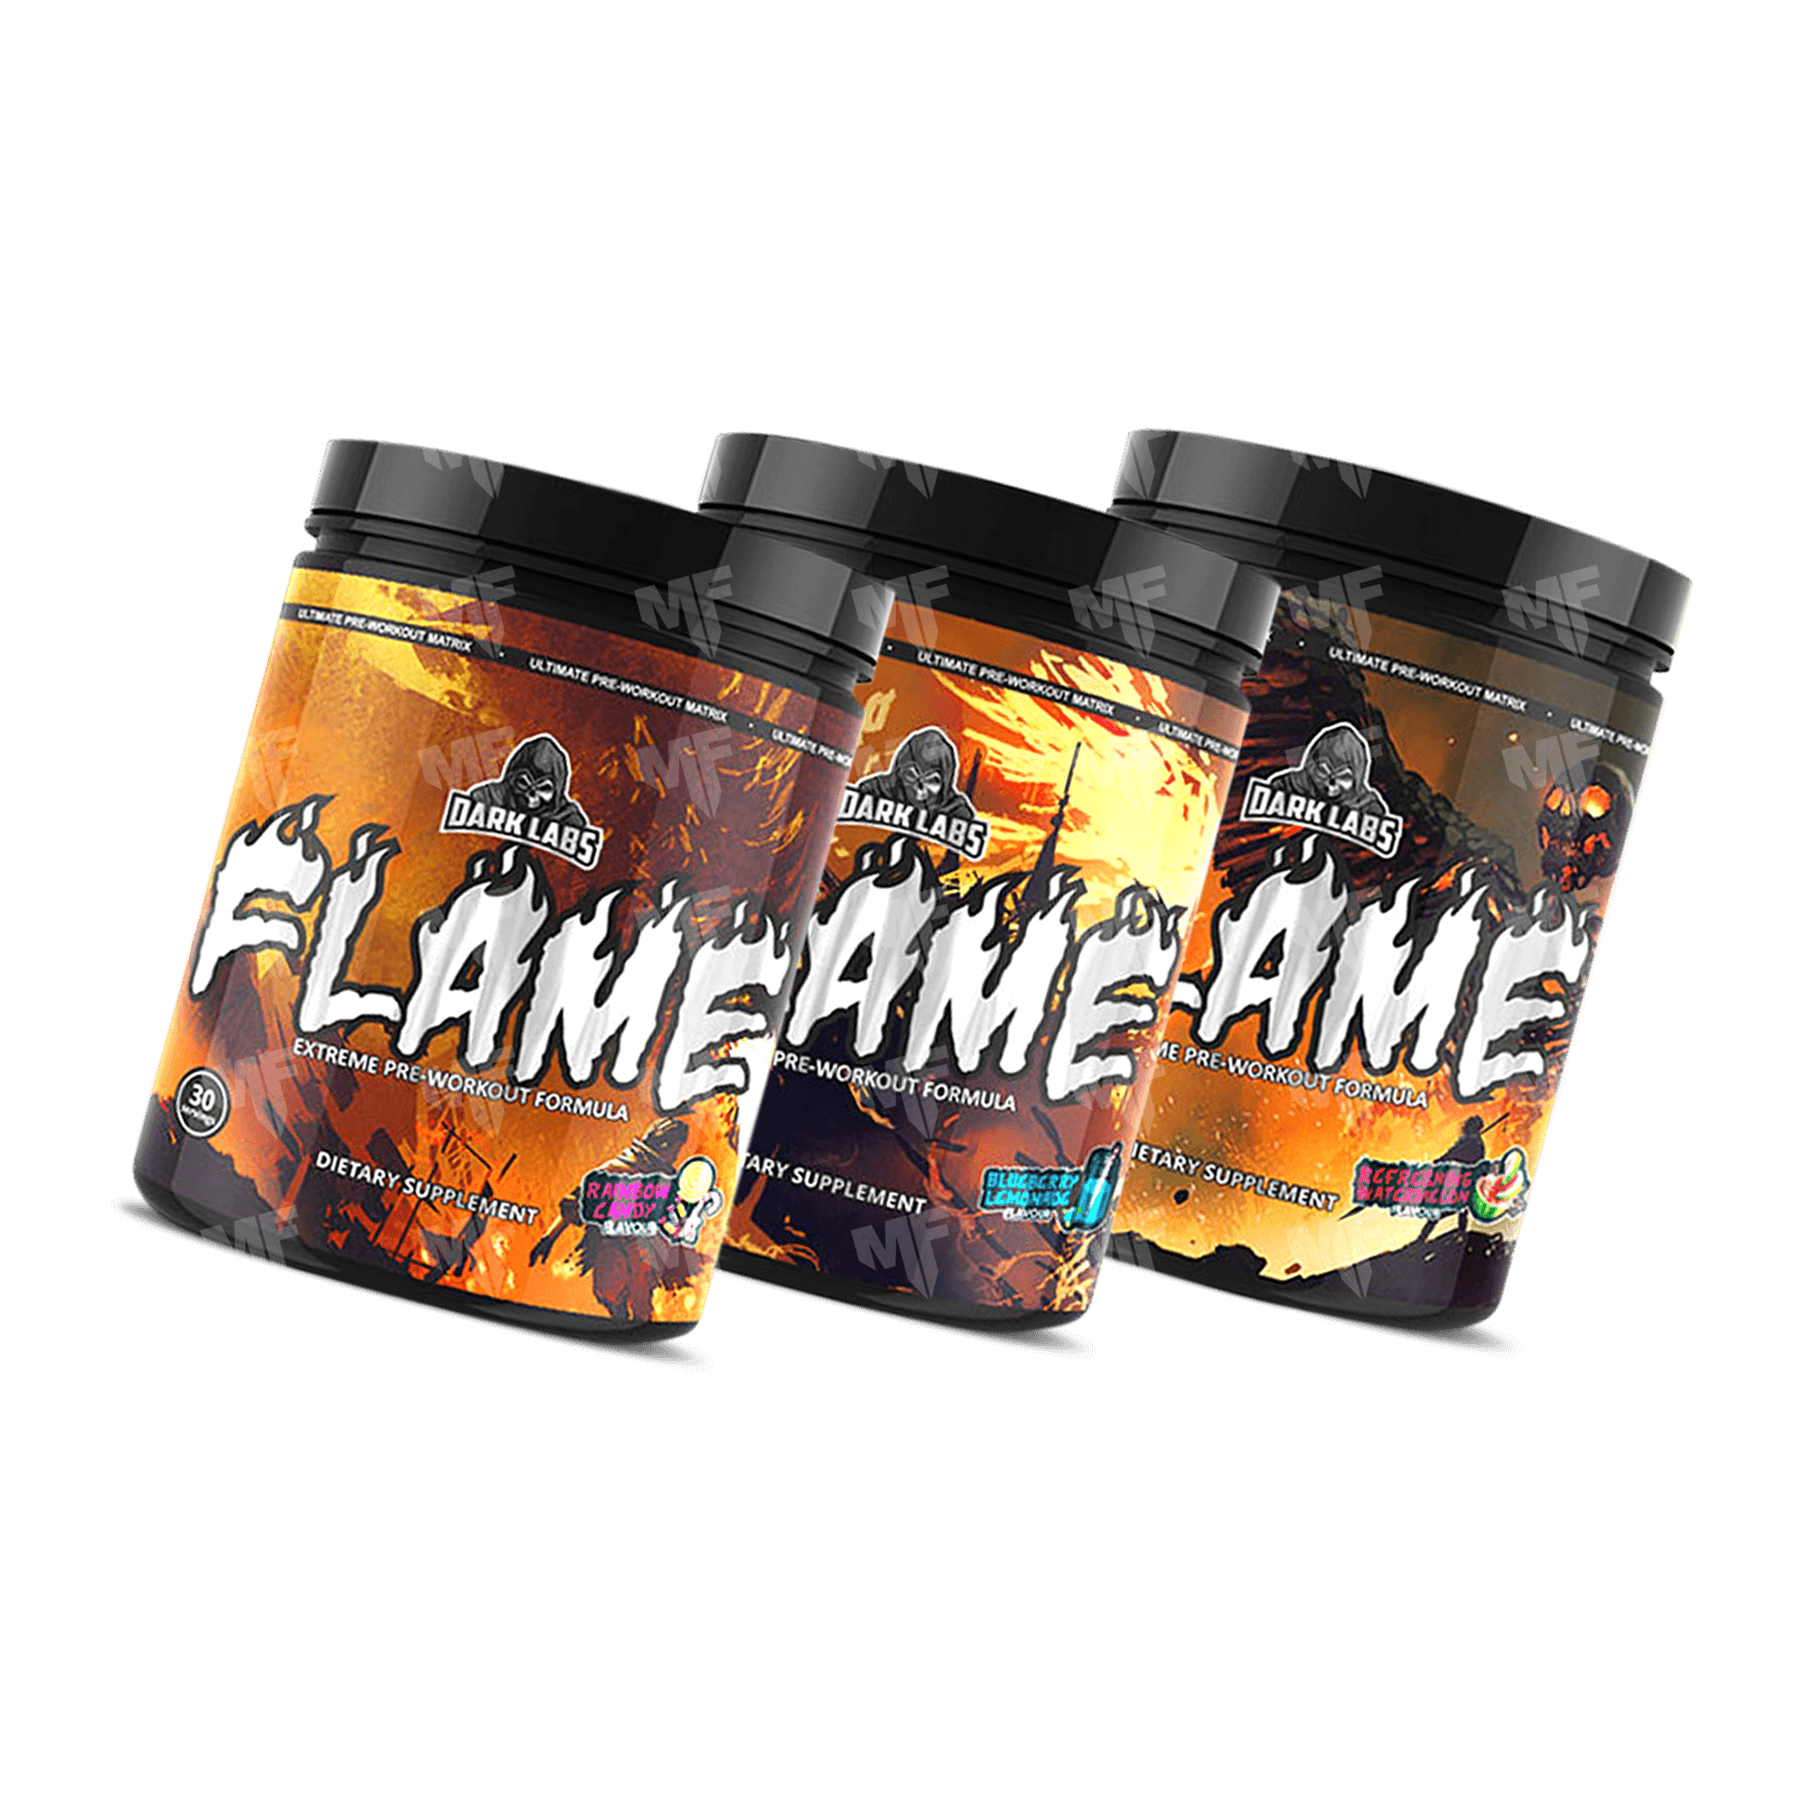 Flame Pre-Workout by Dark Labs